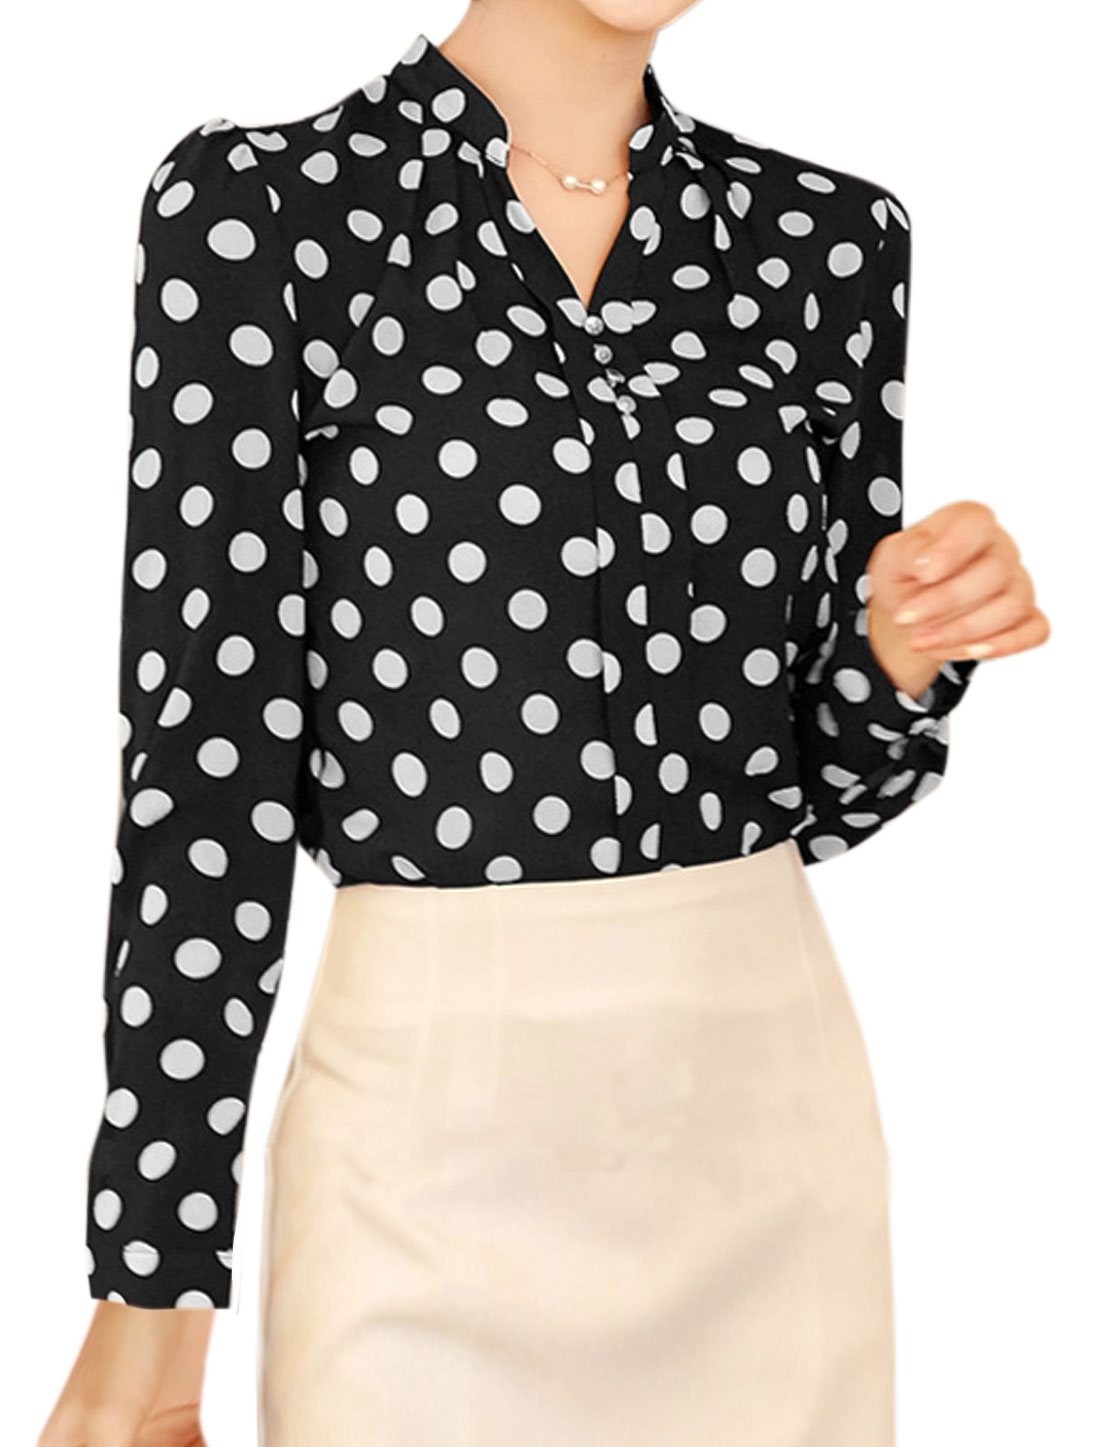 Women Stand Collar Button Decor Polka Dots Print Blouse Black M